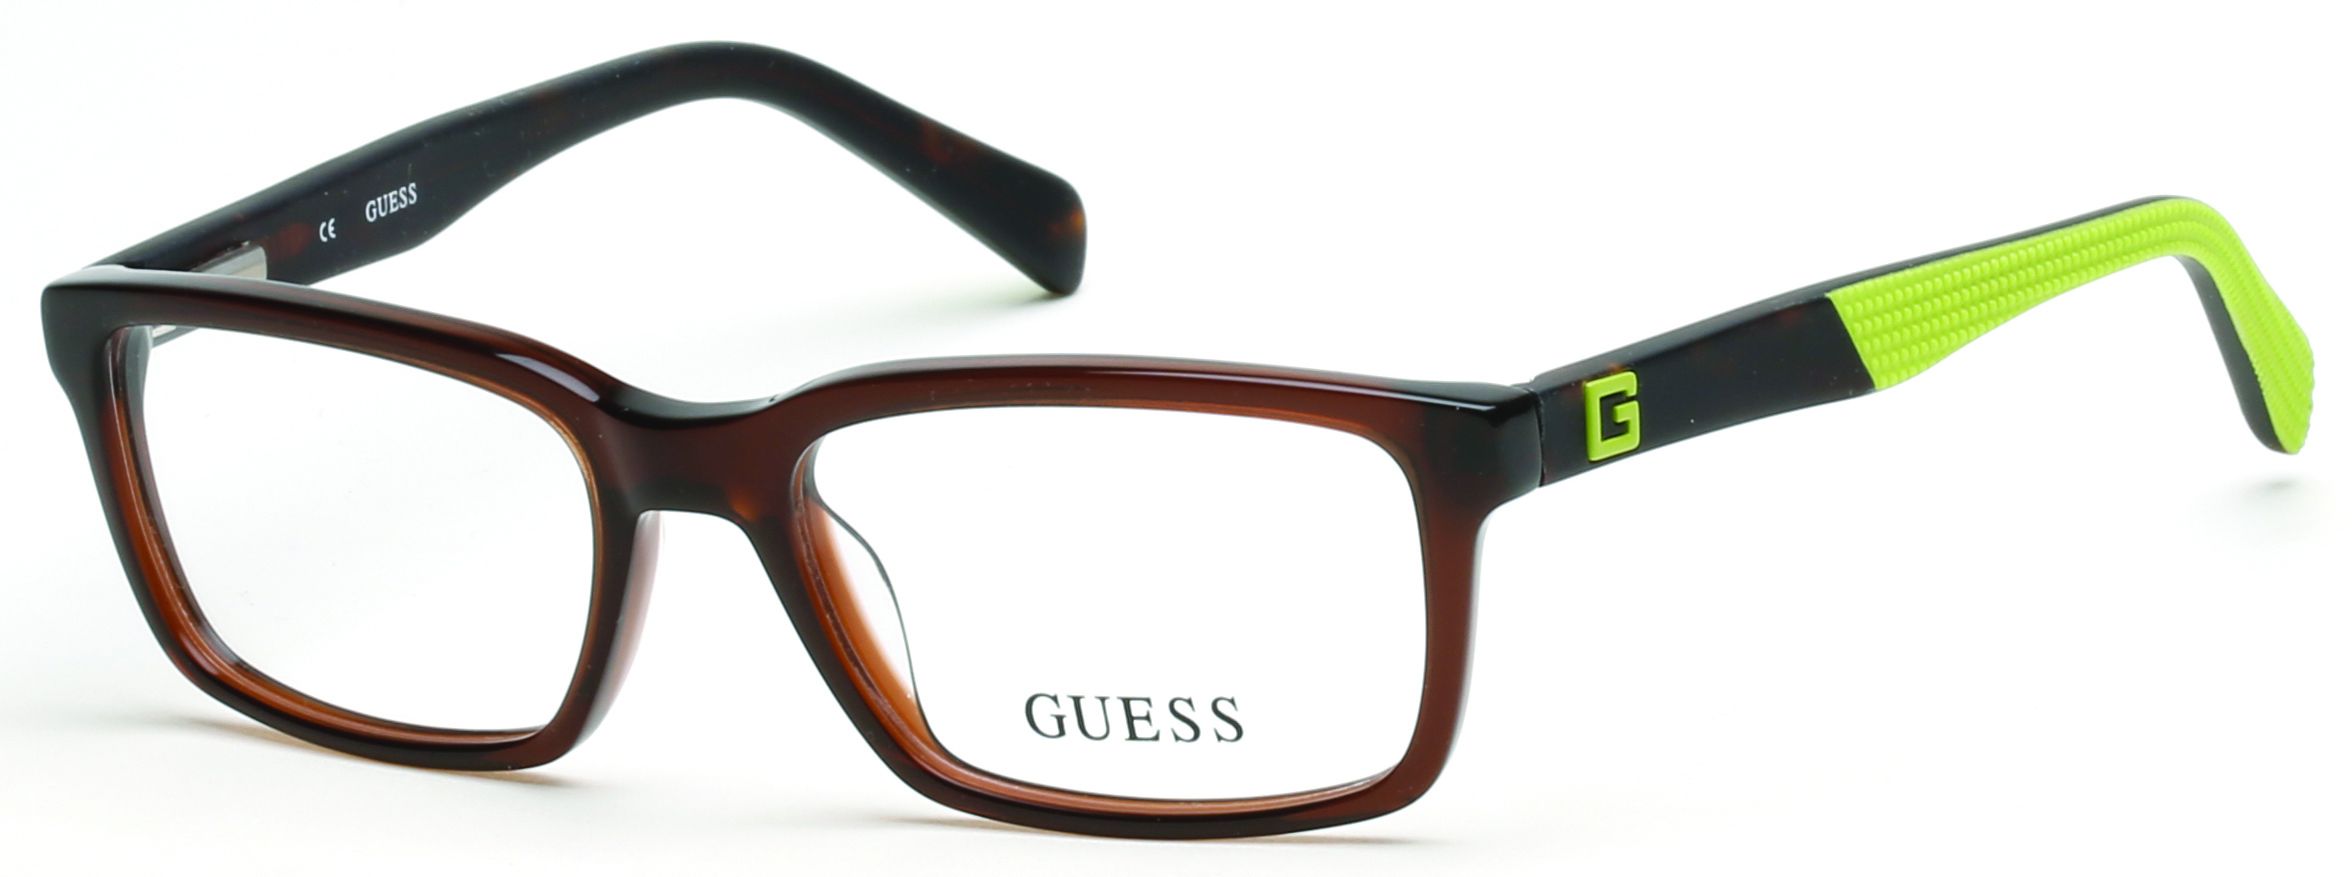 2be0603ad7 Eyewear for Kids - Guess - Optiwow